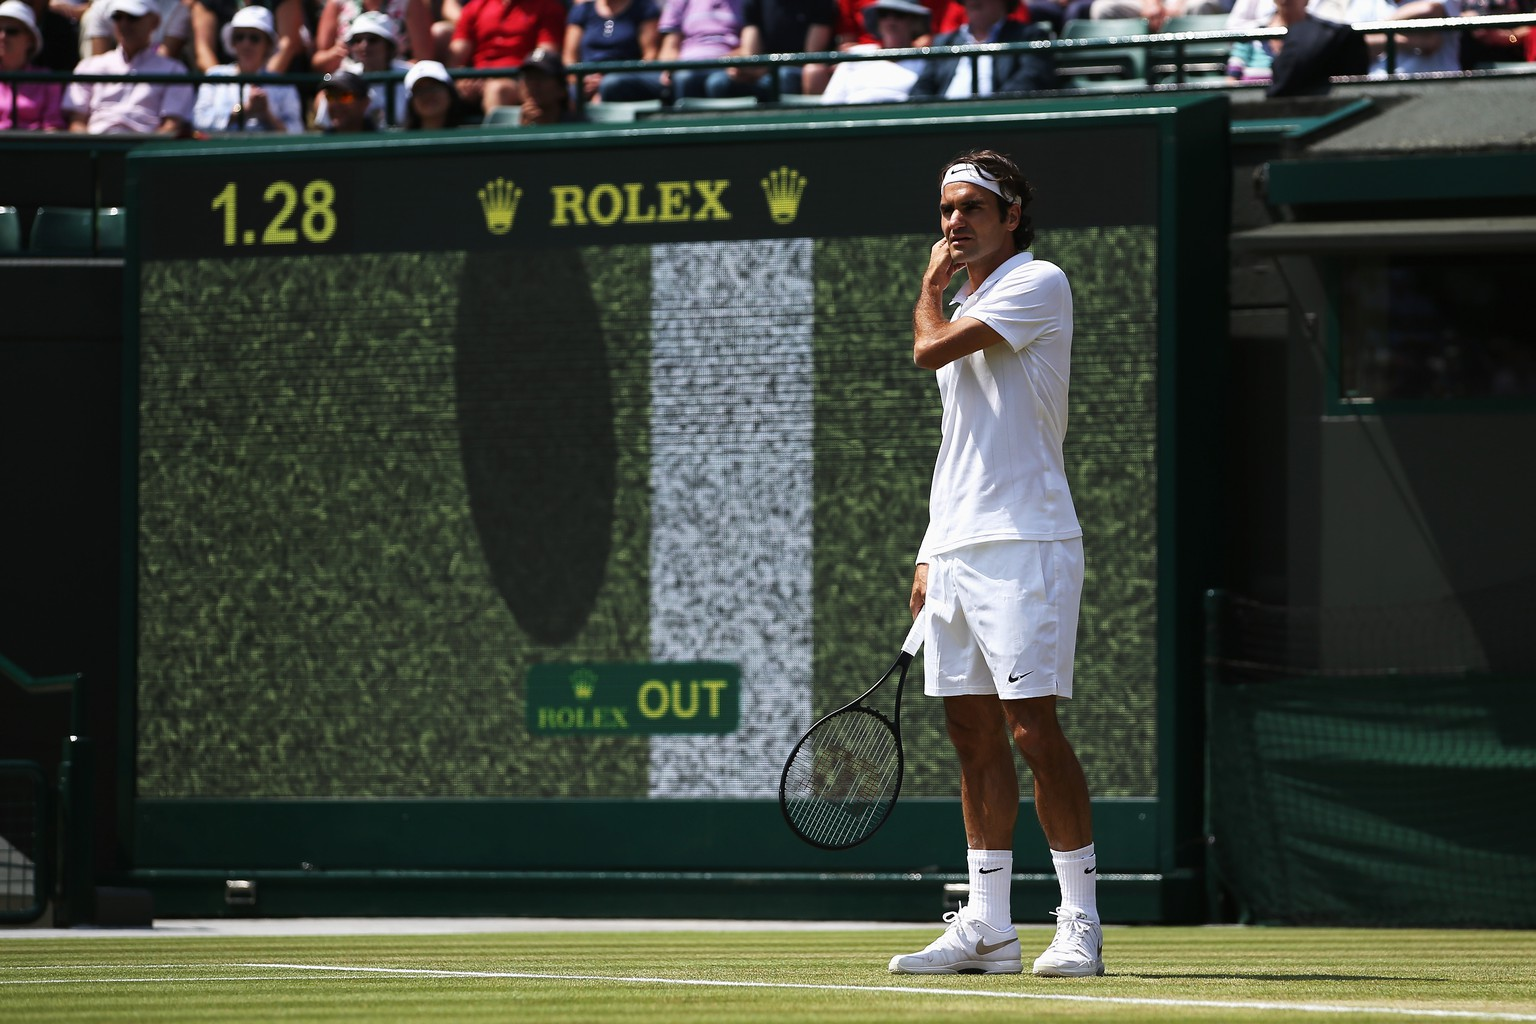 LONDON, ENGLAND - JULY 01:  Roger Federer of Switzerland looks on as a hawk eye review is displayed on screen behind him during his Gentlemen's Singles fourth round match against Tommy Robredo of Spain on day eight of the Wimbledon Lawn Tennis Championships at the All England Lawn Tennis and Croquet Club on July 1, 2014 in London, England.  (Photo by Jan Kruger/Getty Images)